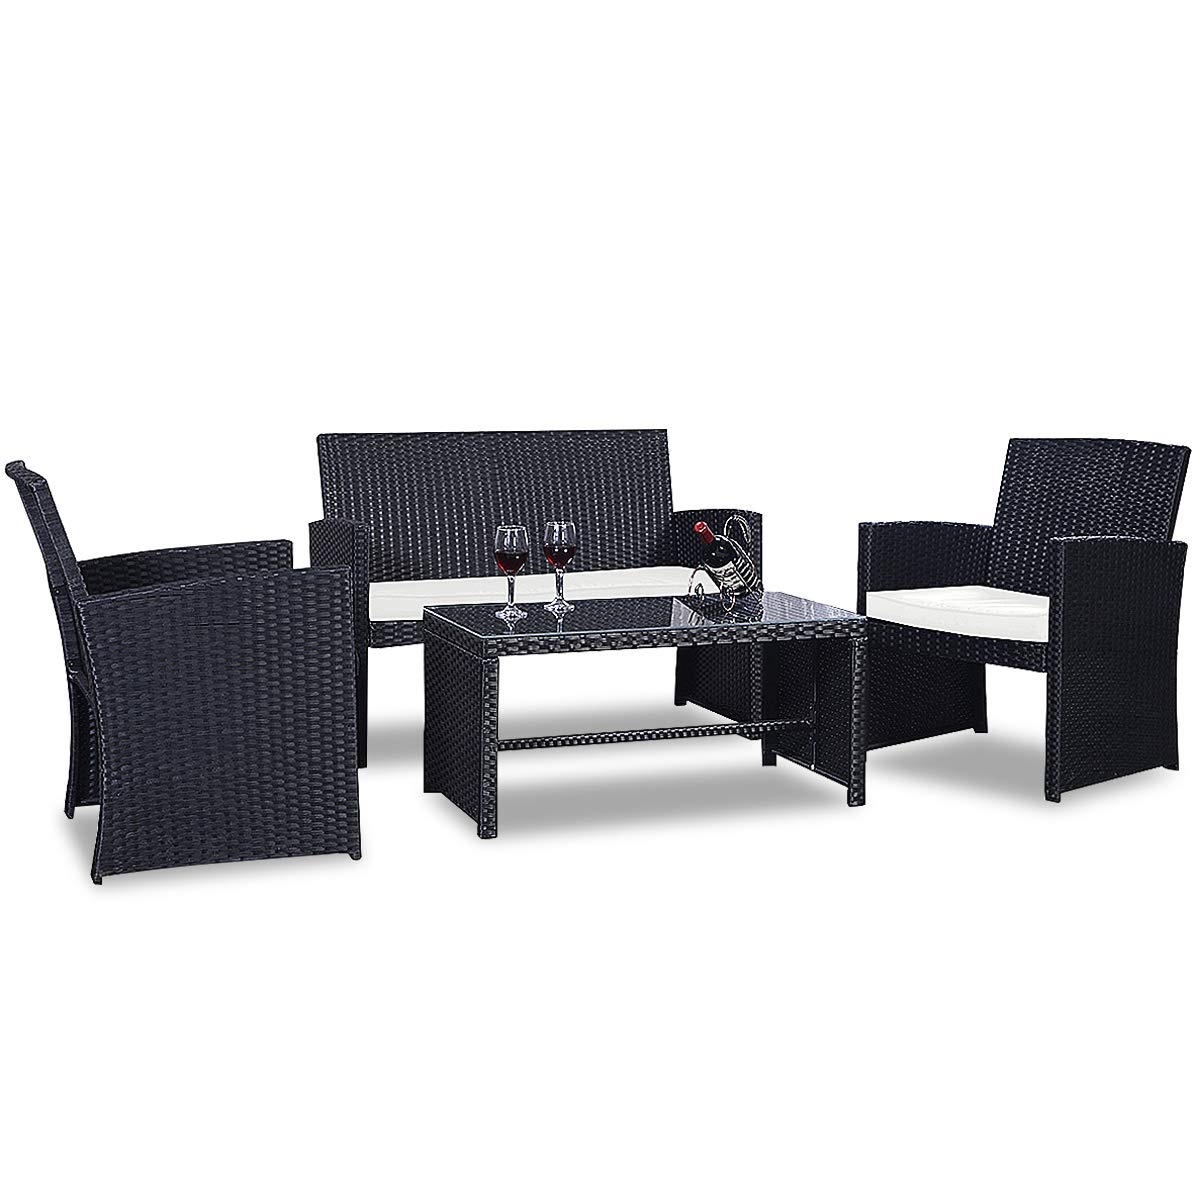 Patio furniture set garden lawn pool backyard outdoor sofa wicker conversation set with weather resistant cushions and tempered glass tabletop black